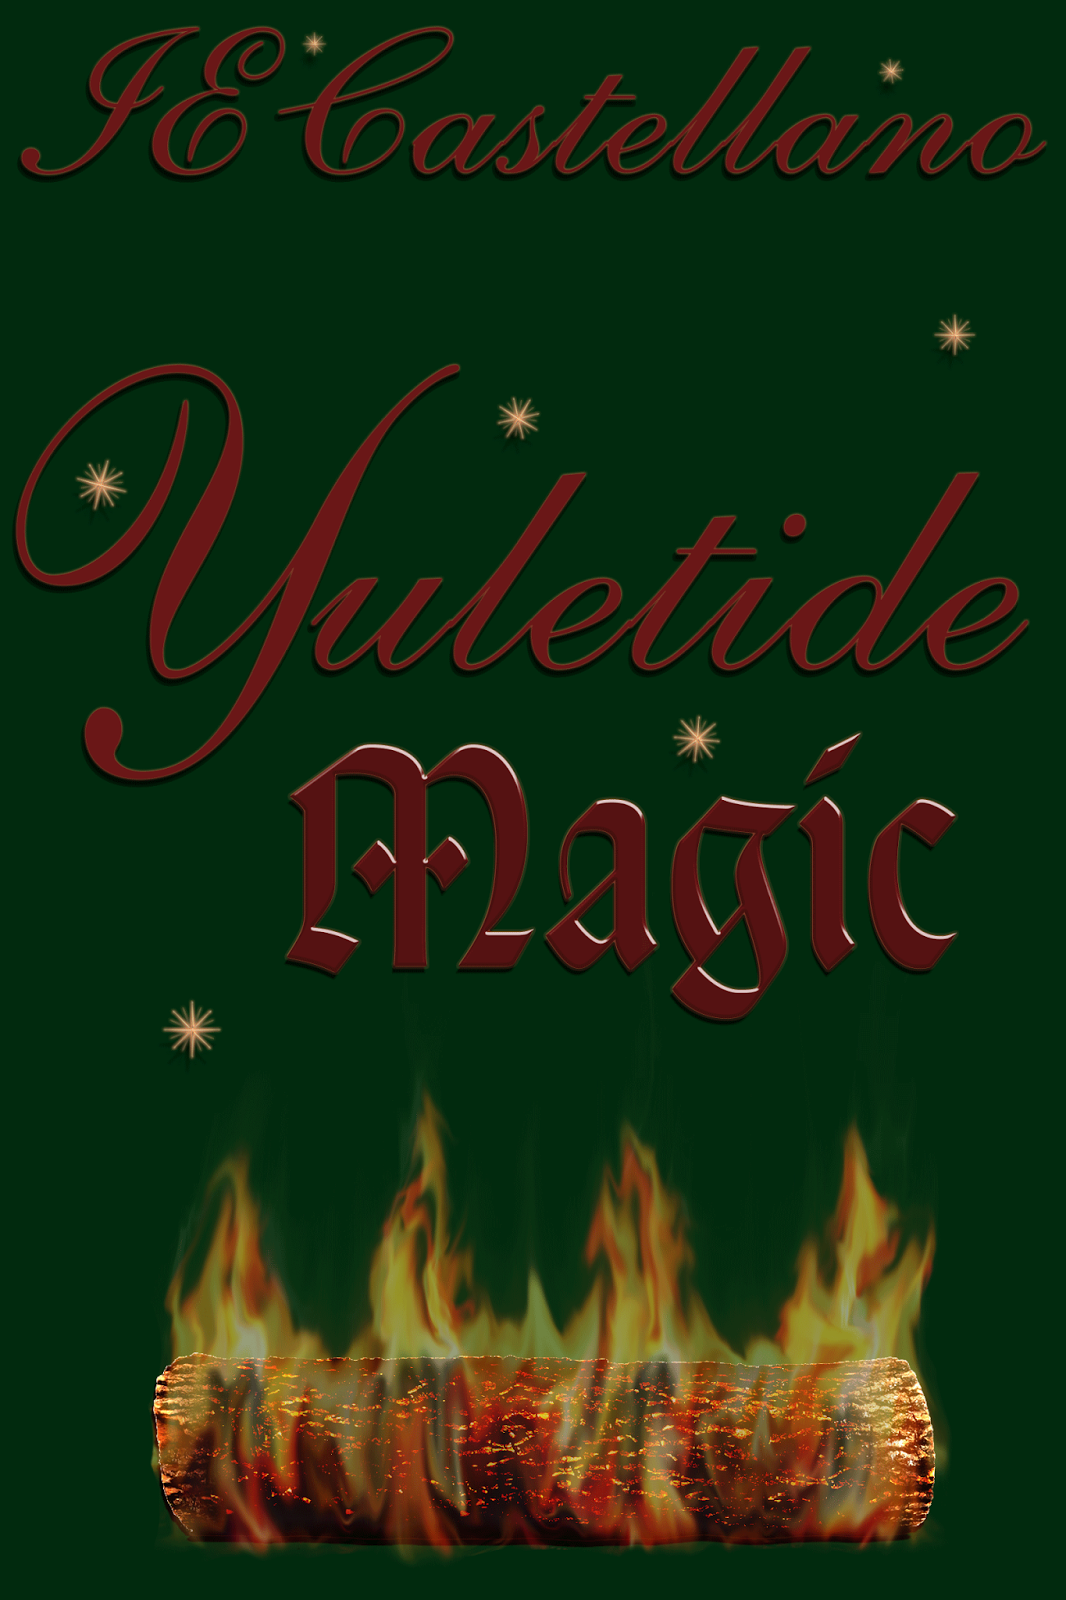 Yuletide Magic (The World In-between series prequel) by IE Castellano